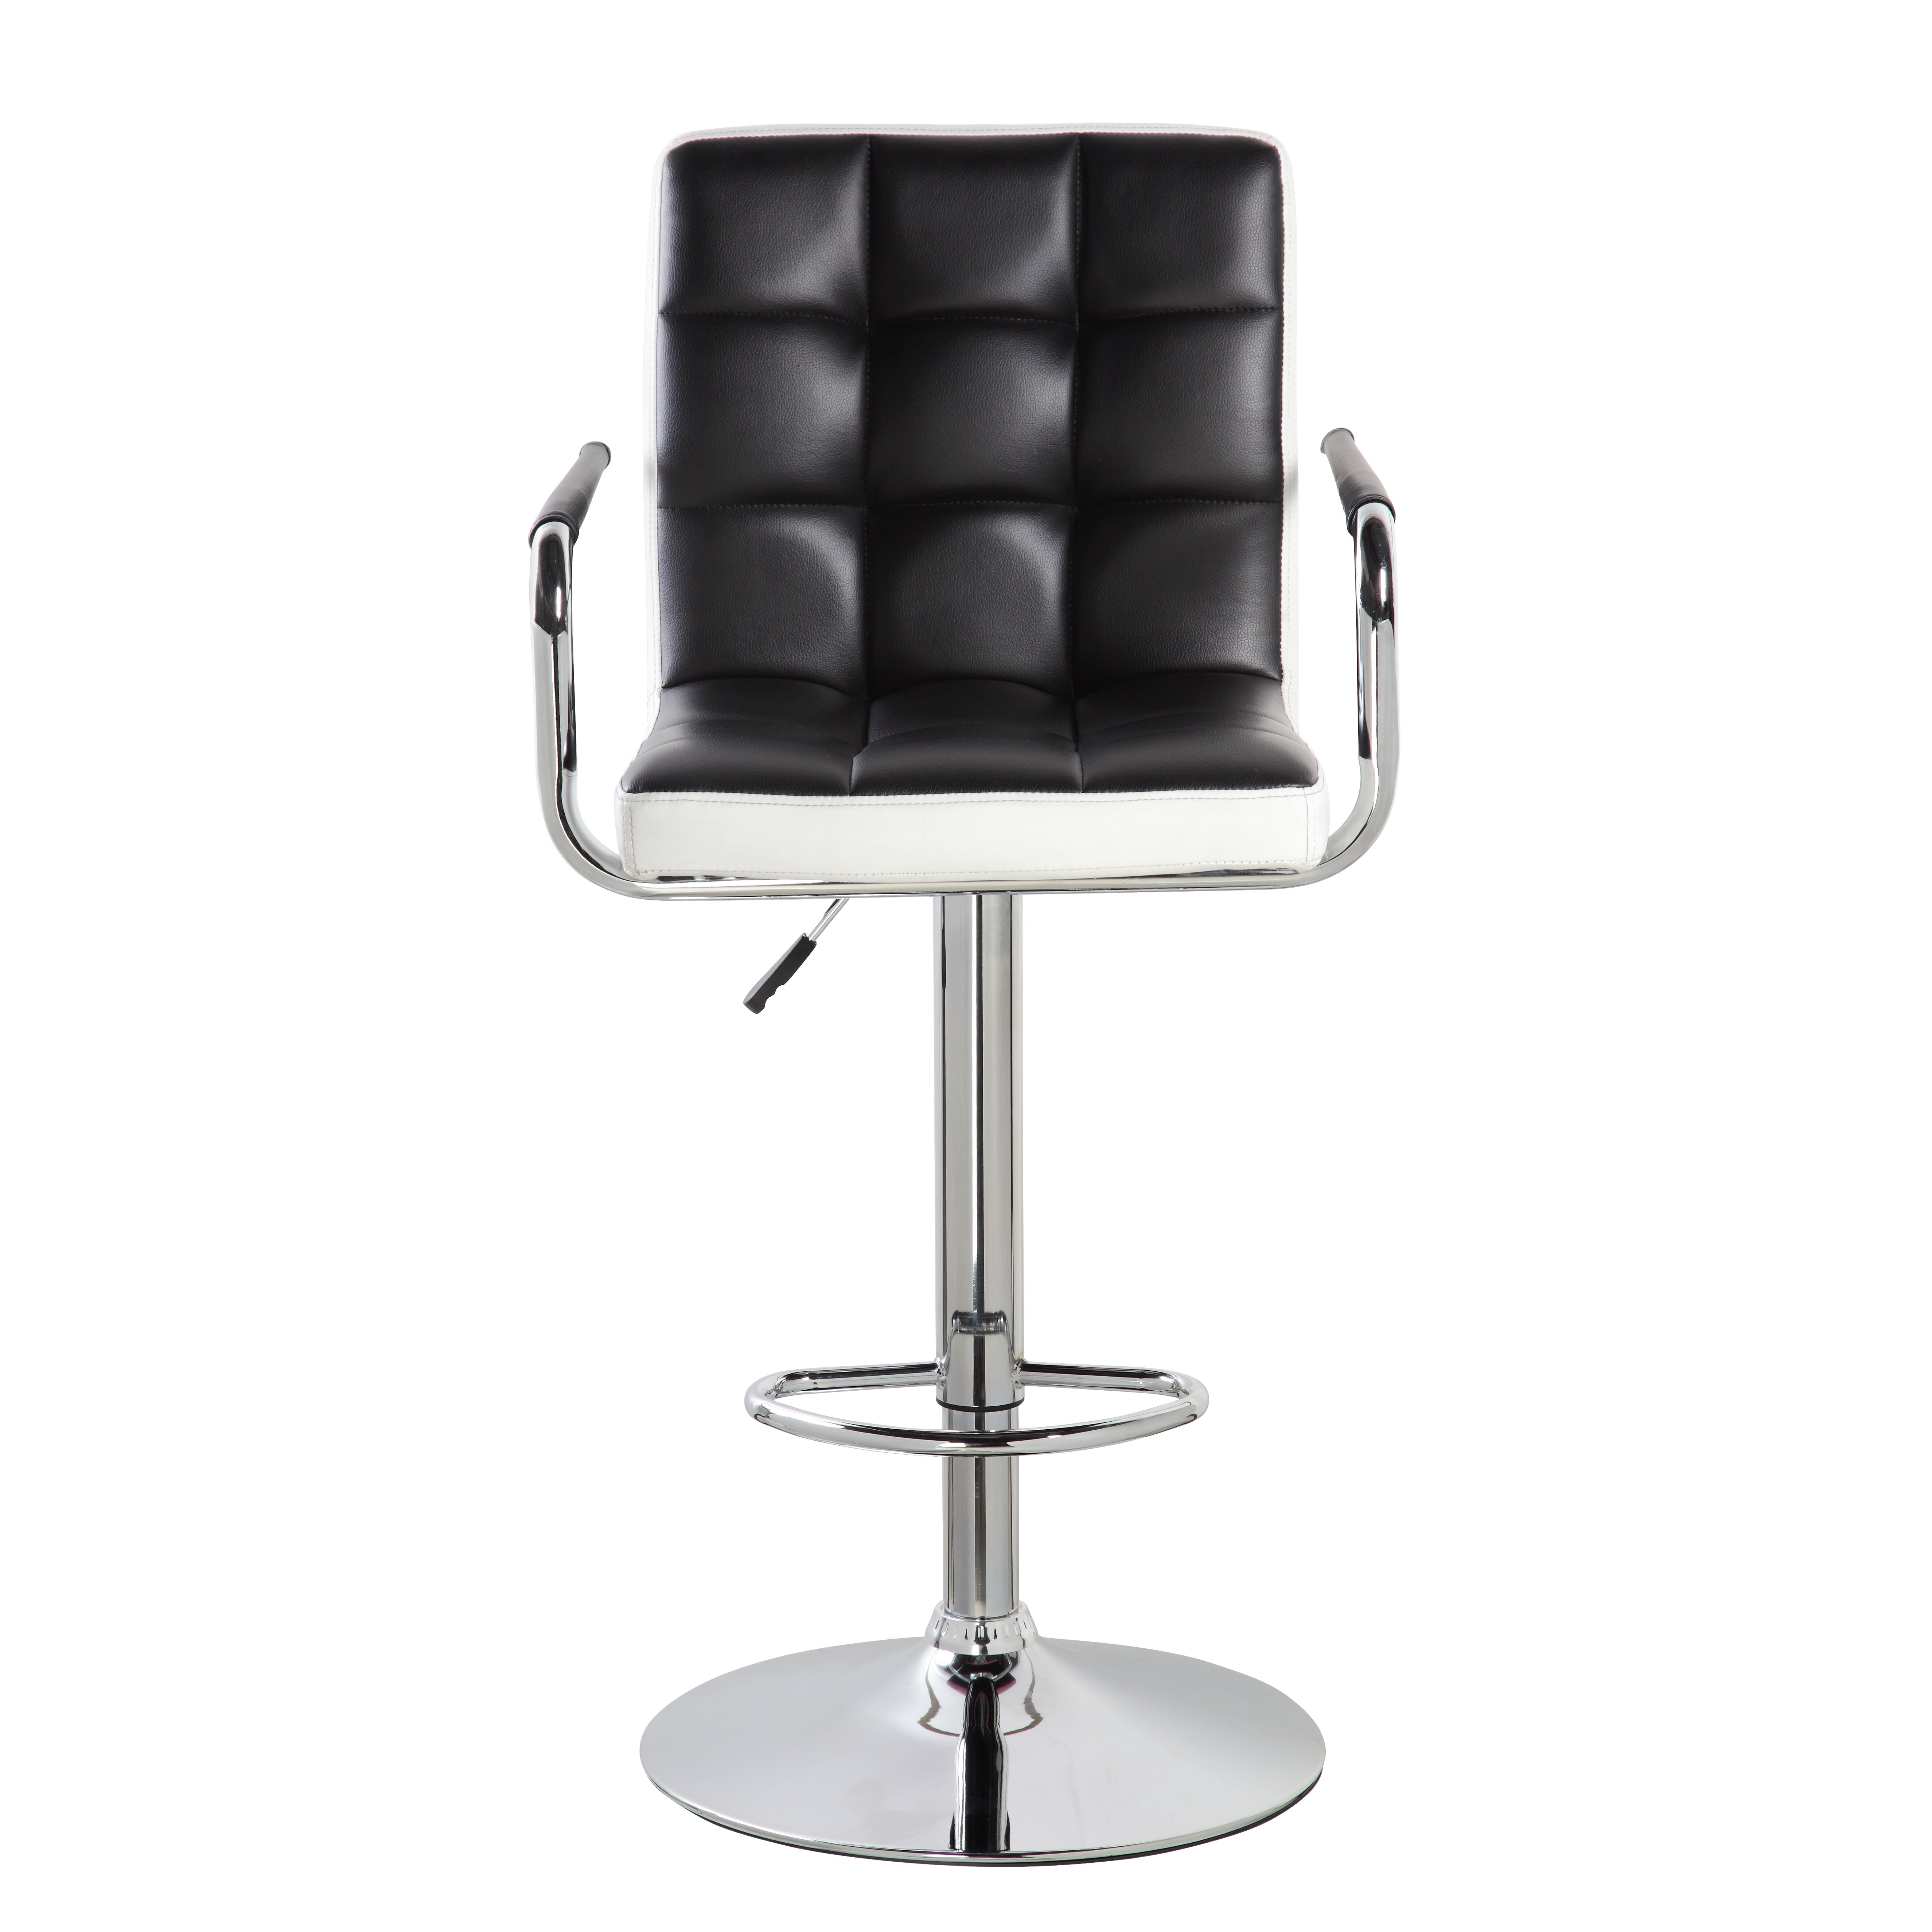 Best Interior Ideas kingofficeus : United Office Chair Adjustable Height Swivel Bar Stool with Cushion from kingoffice.us size 5300 x 5300 jpeg 923kB